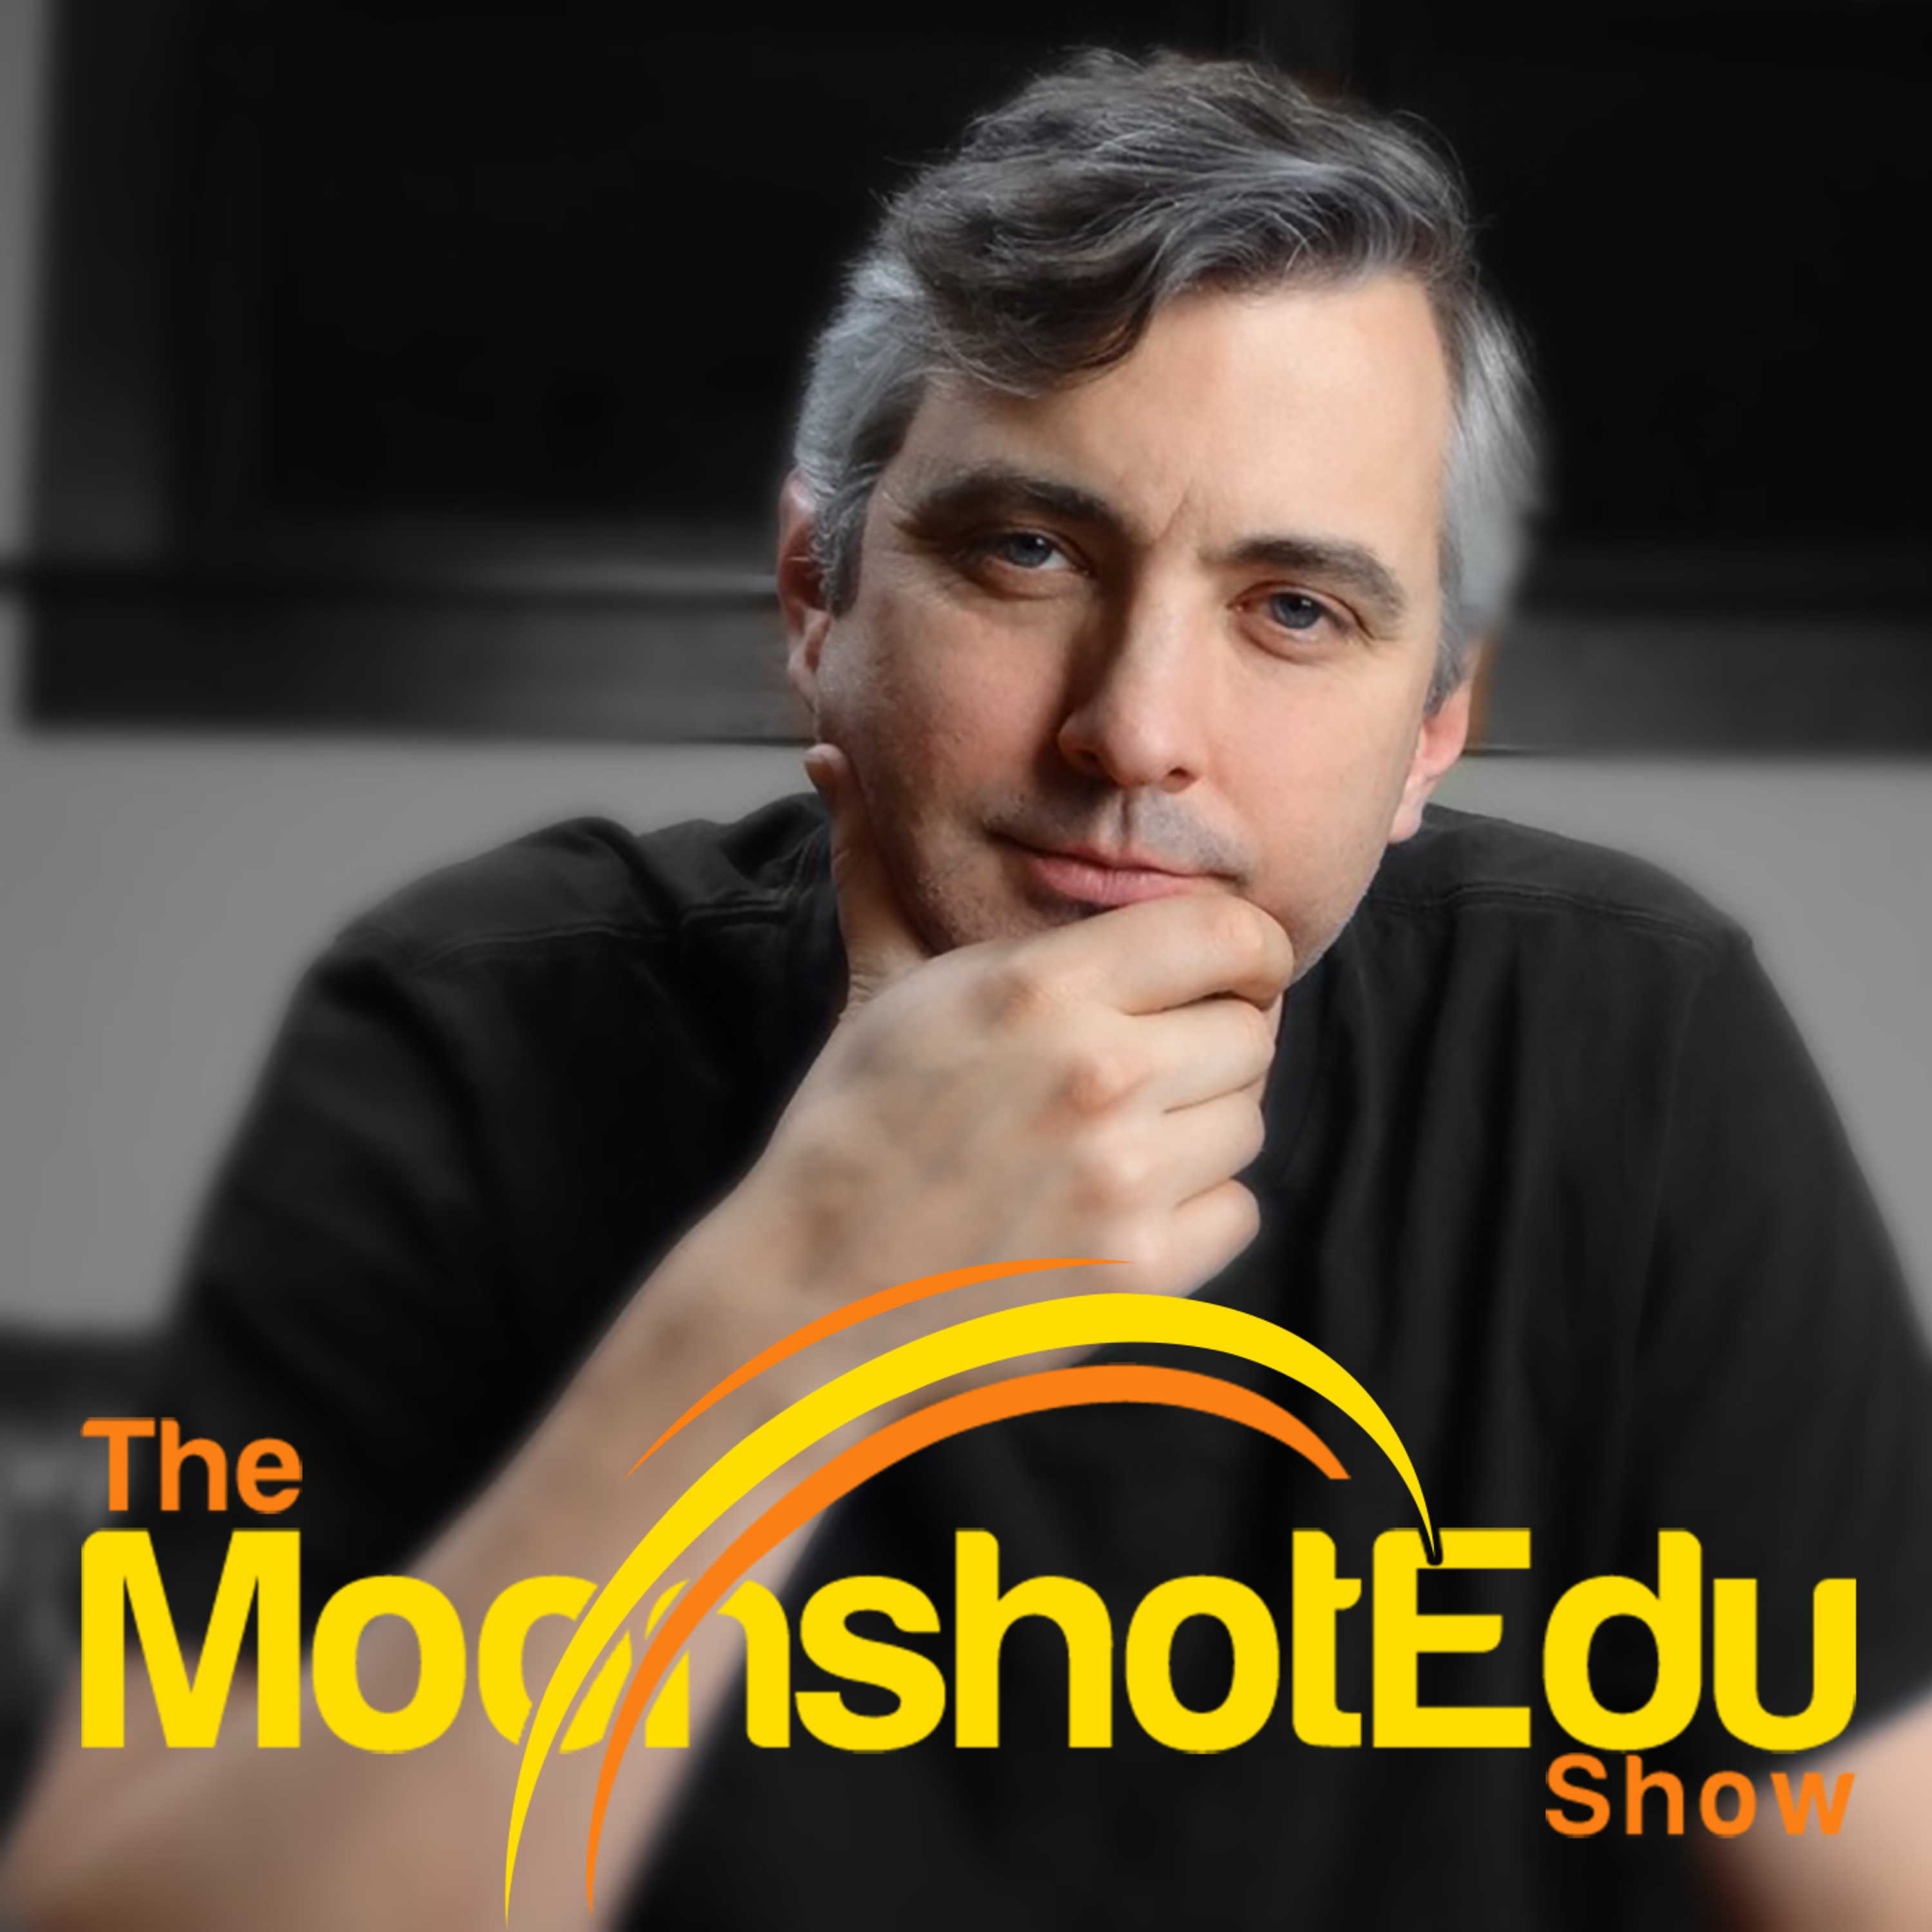 057 - An Interview with Bryan Alexander About Imagining Possible Futures in Education